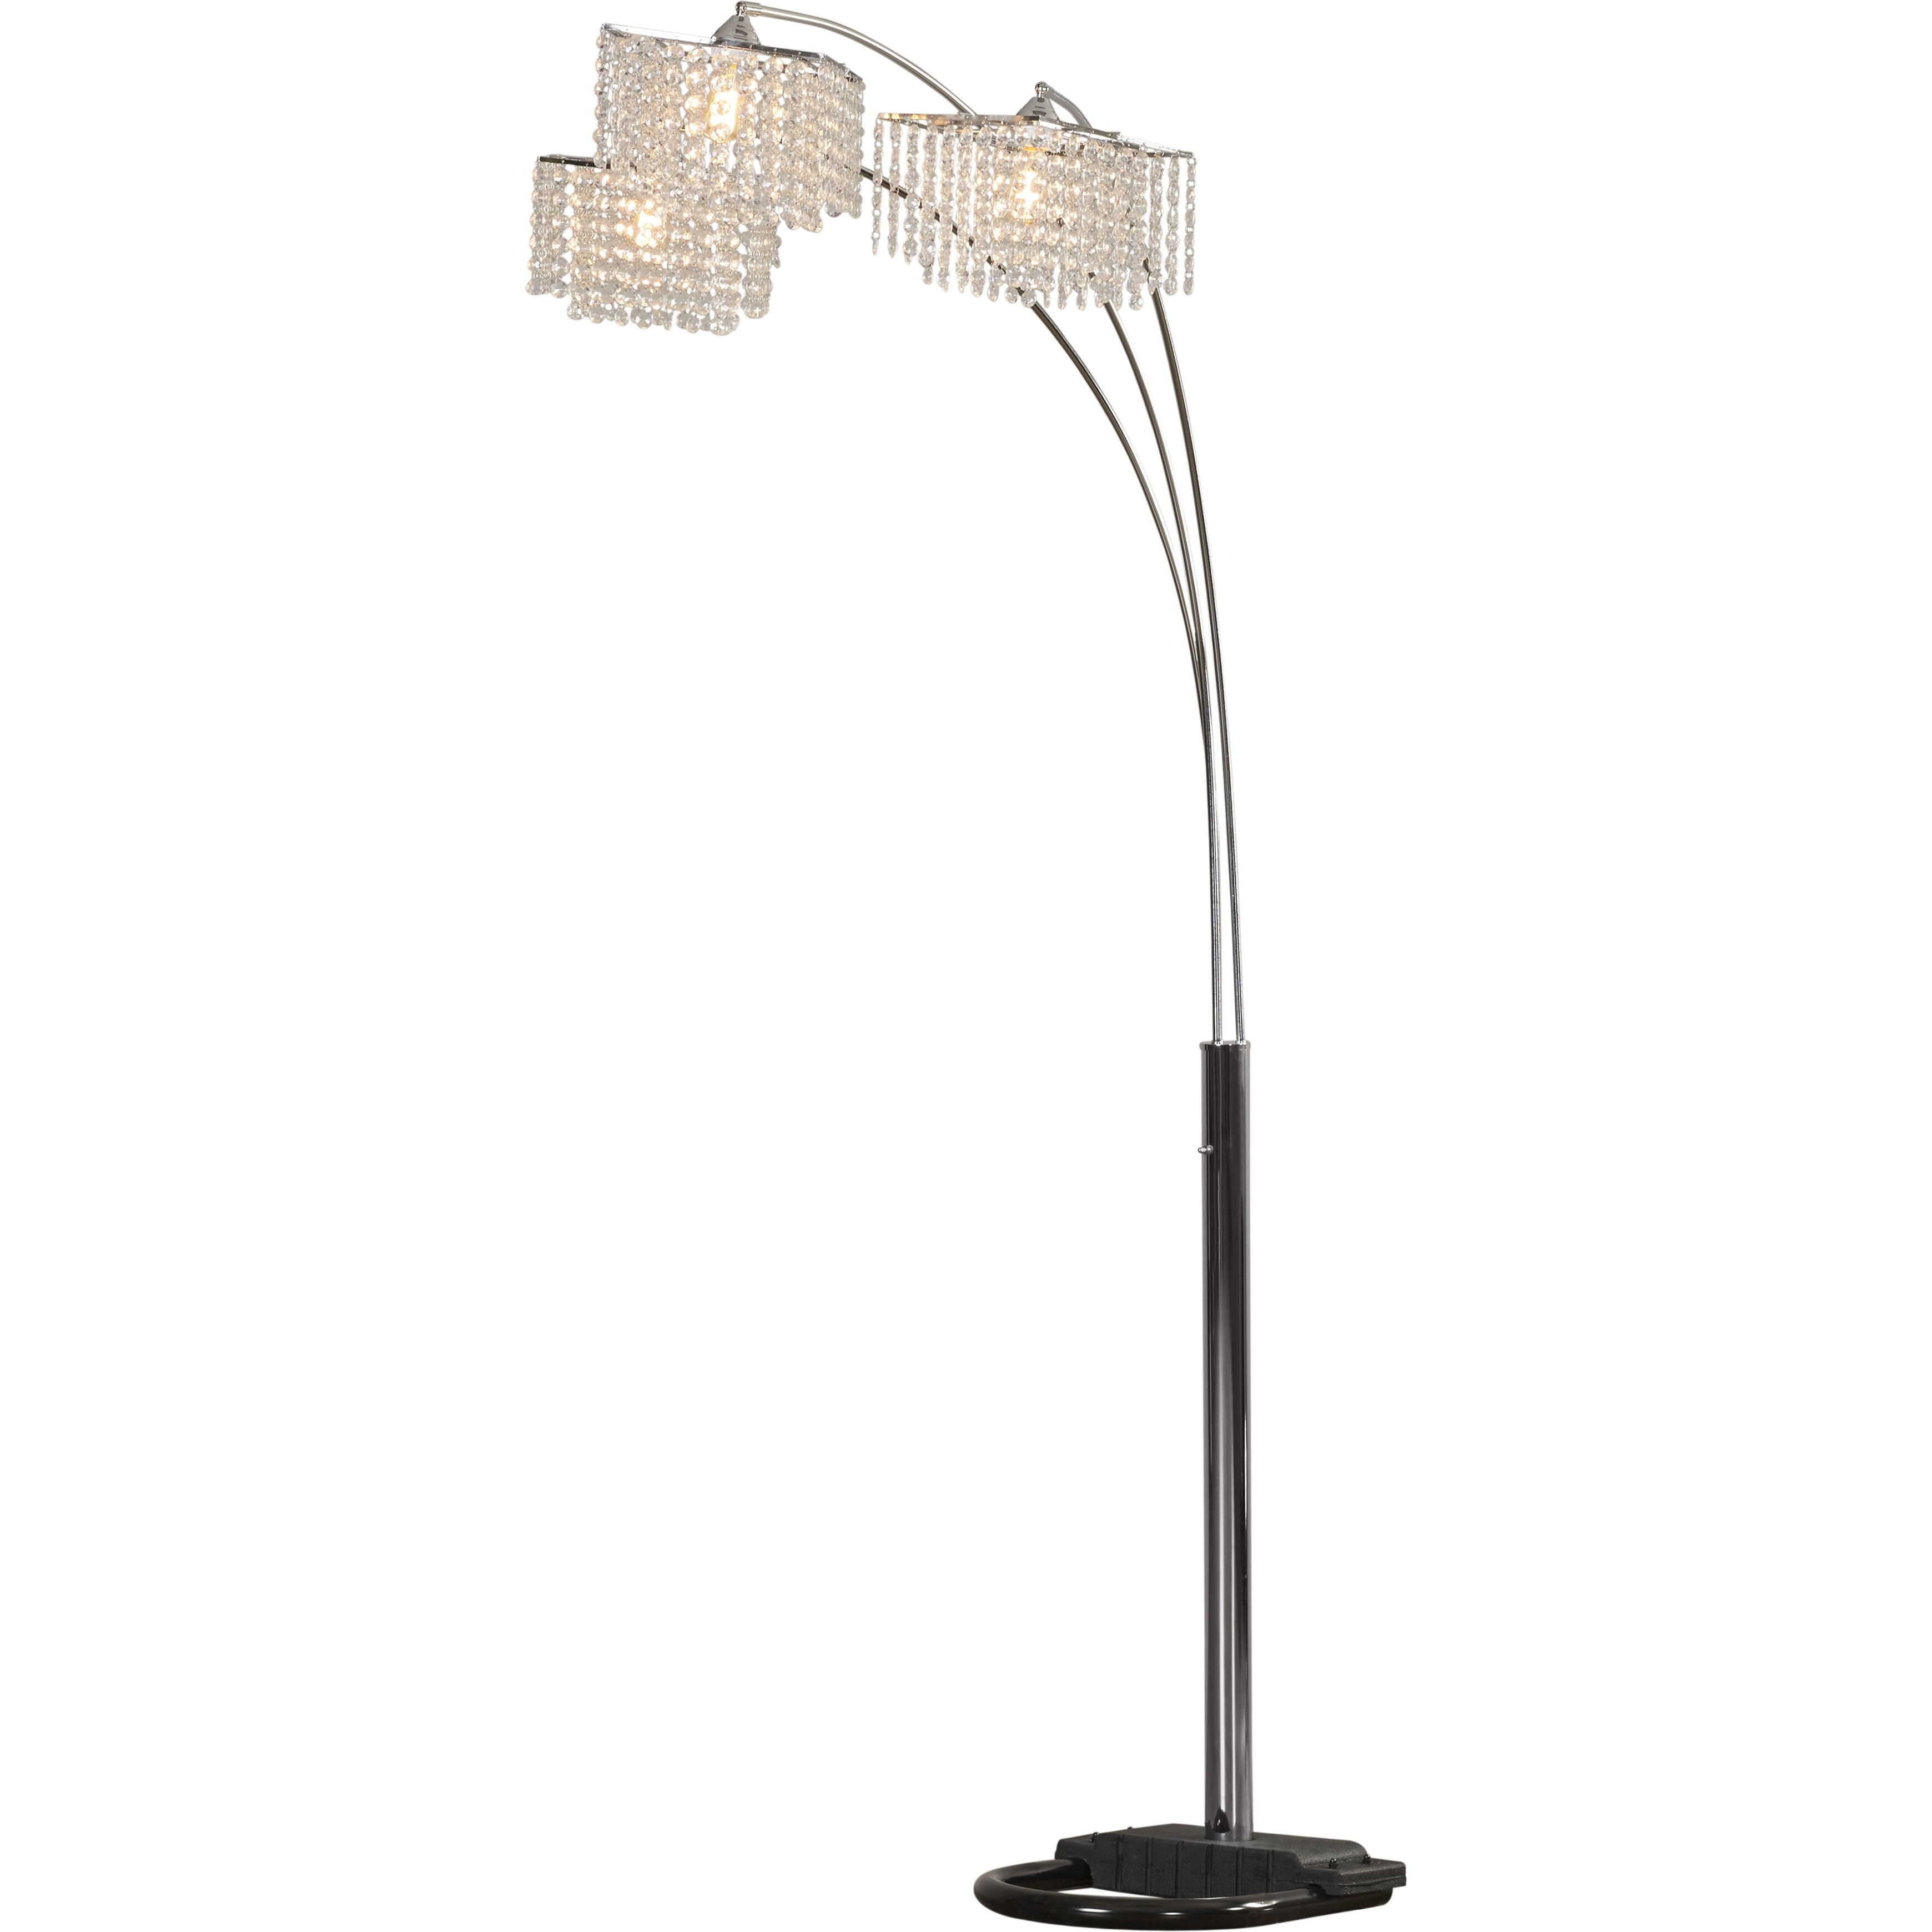 Eldshult table lamp ikea fabric shade gives a diffused and decorative - Inter Ikea Systems B V 1999 2017 Privacy Policy Iron Tree Floor Lamp